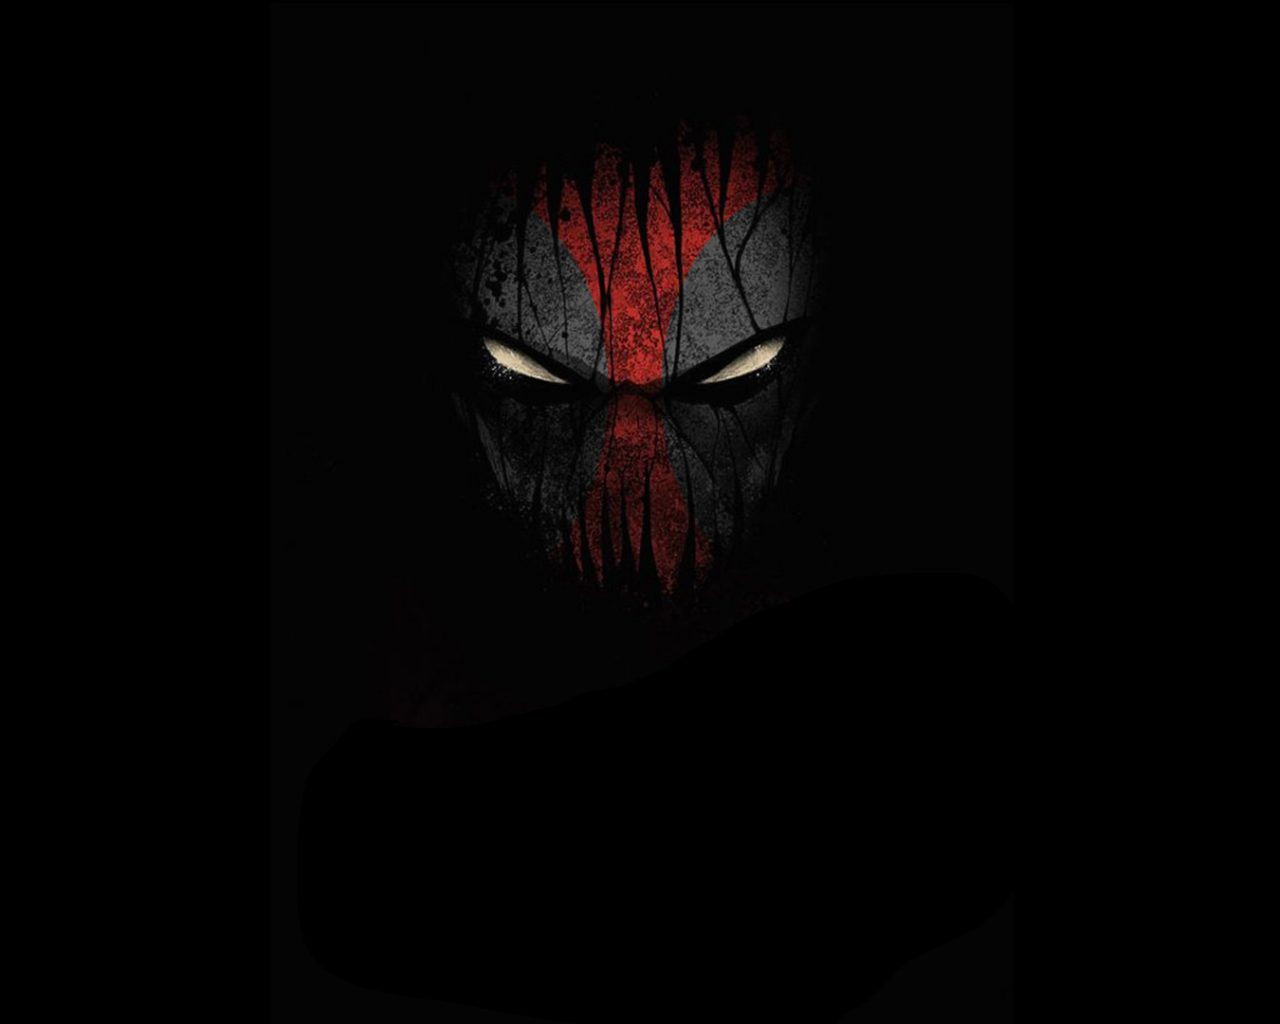 Batman Logo Hd Mobile Wallpaper Deadpool Face Hd Wallpaper